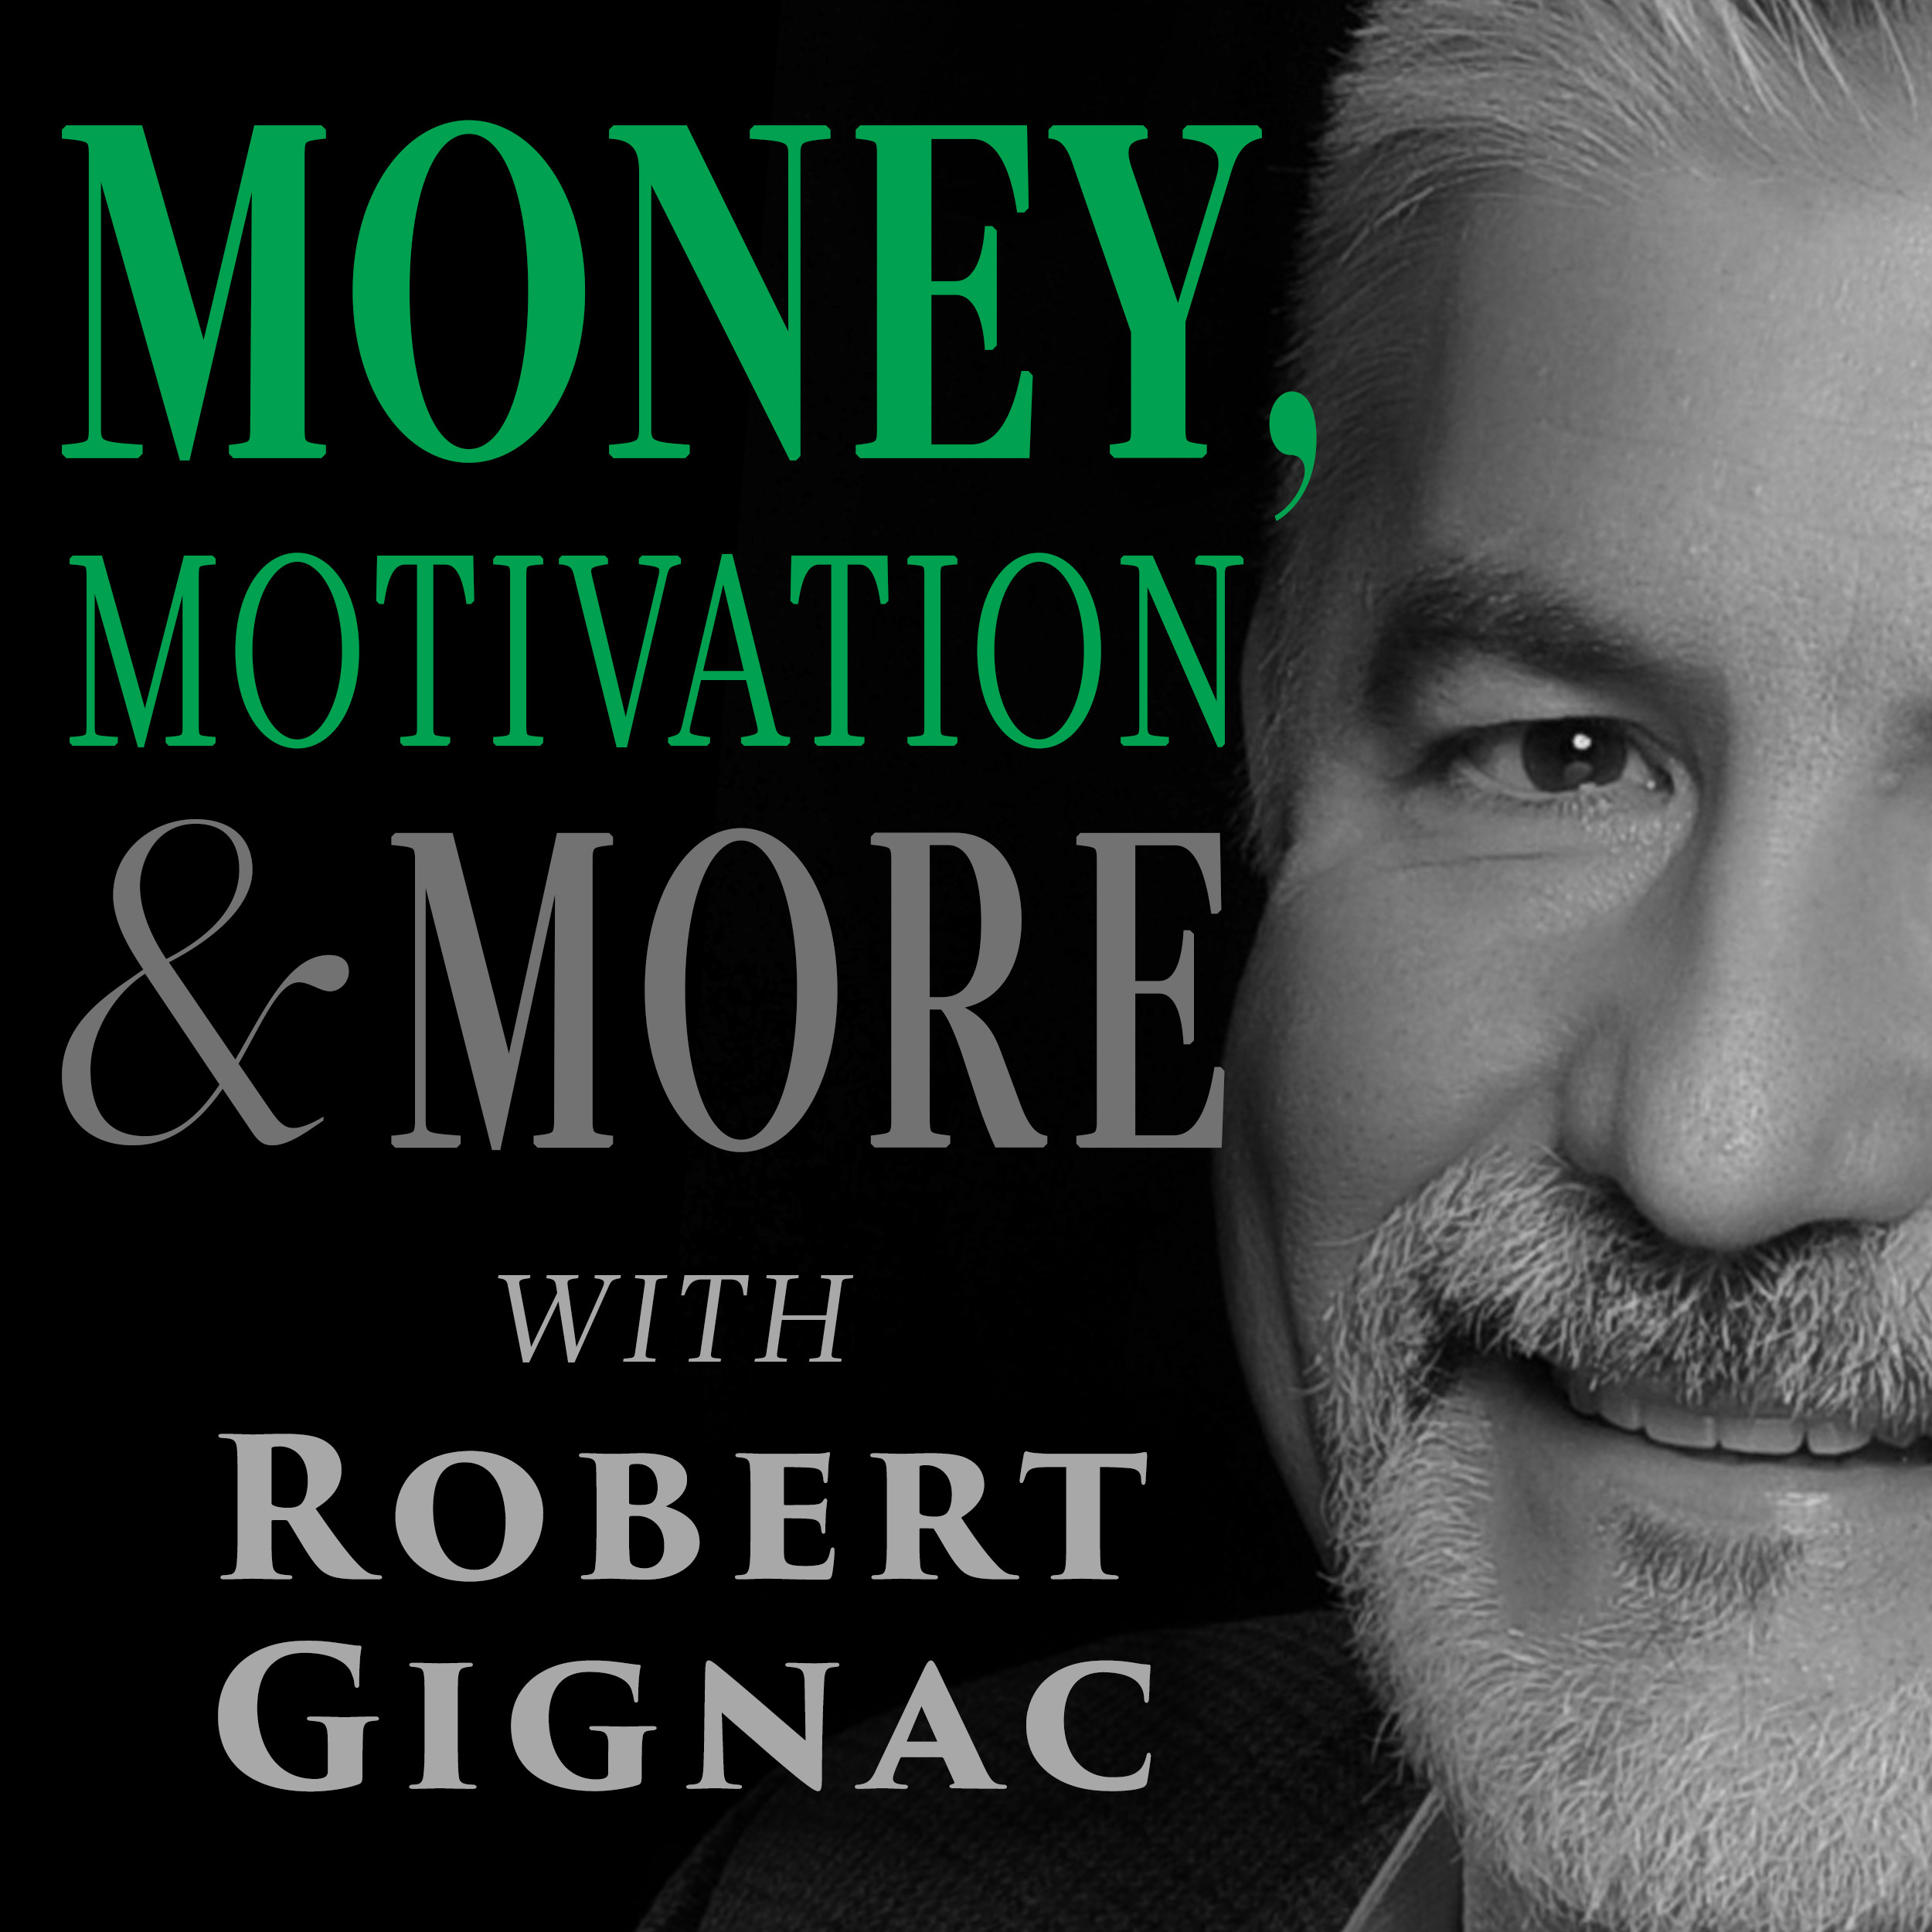 Money, Motivation & More with Robert Gignac